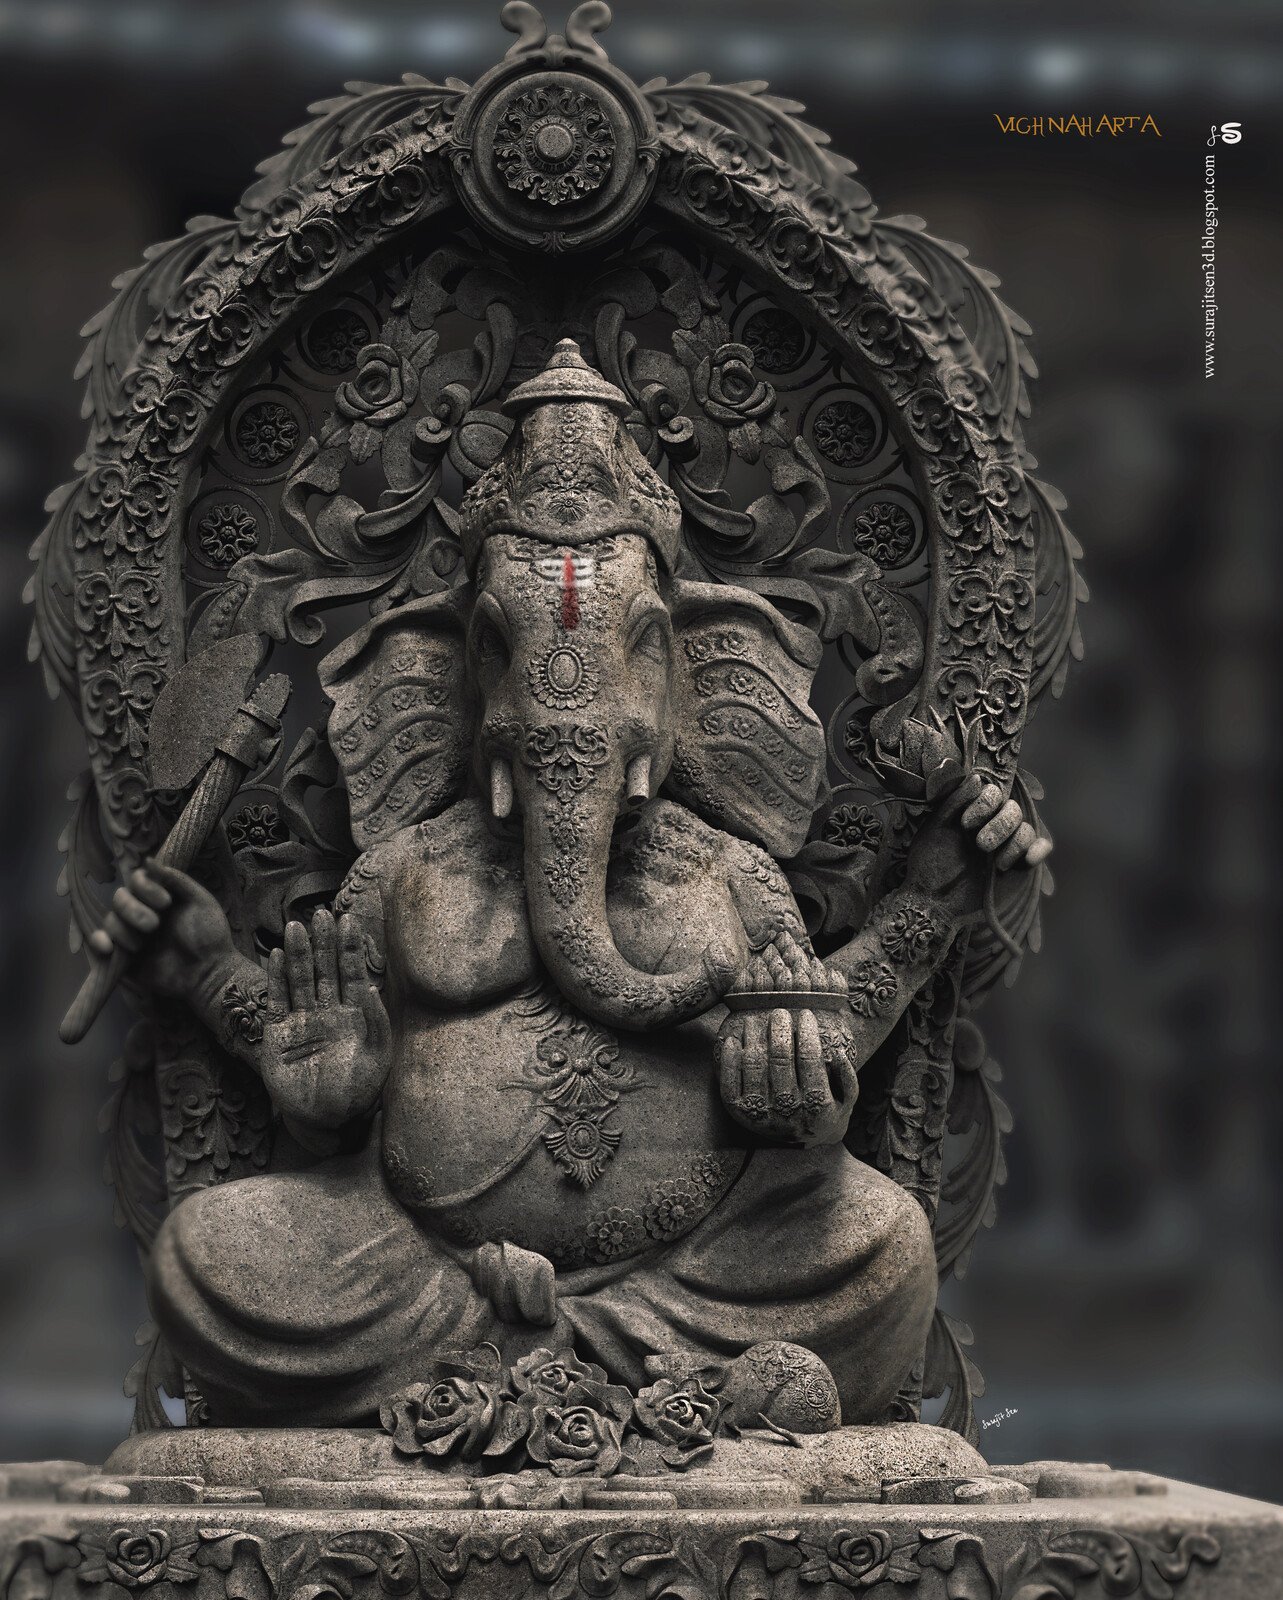 Vighnaharta Digital Sculpture. Dedicating one of my Digital Sculptures to Lord Ganesha. May the Lord Vighna  Vinayaka removes all obstacles and showers us with bounties. Happy Ganesh Chaturthi